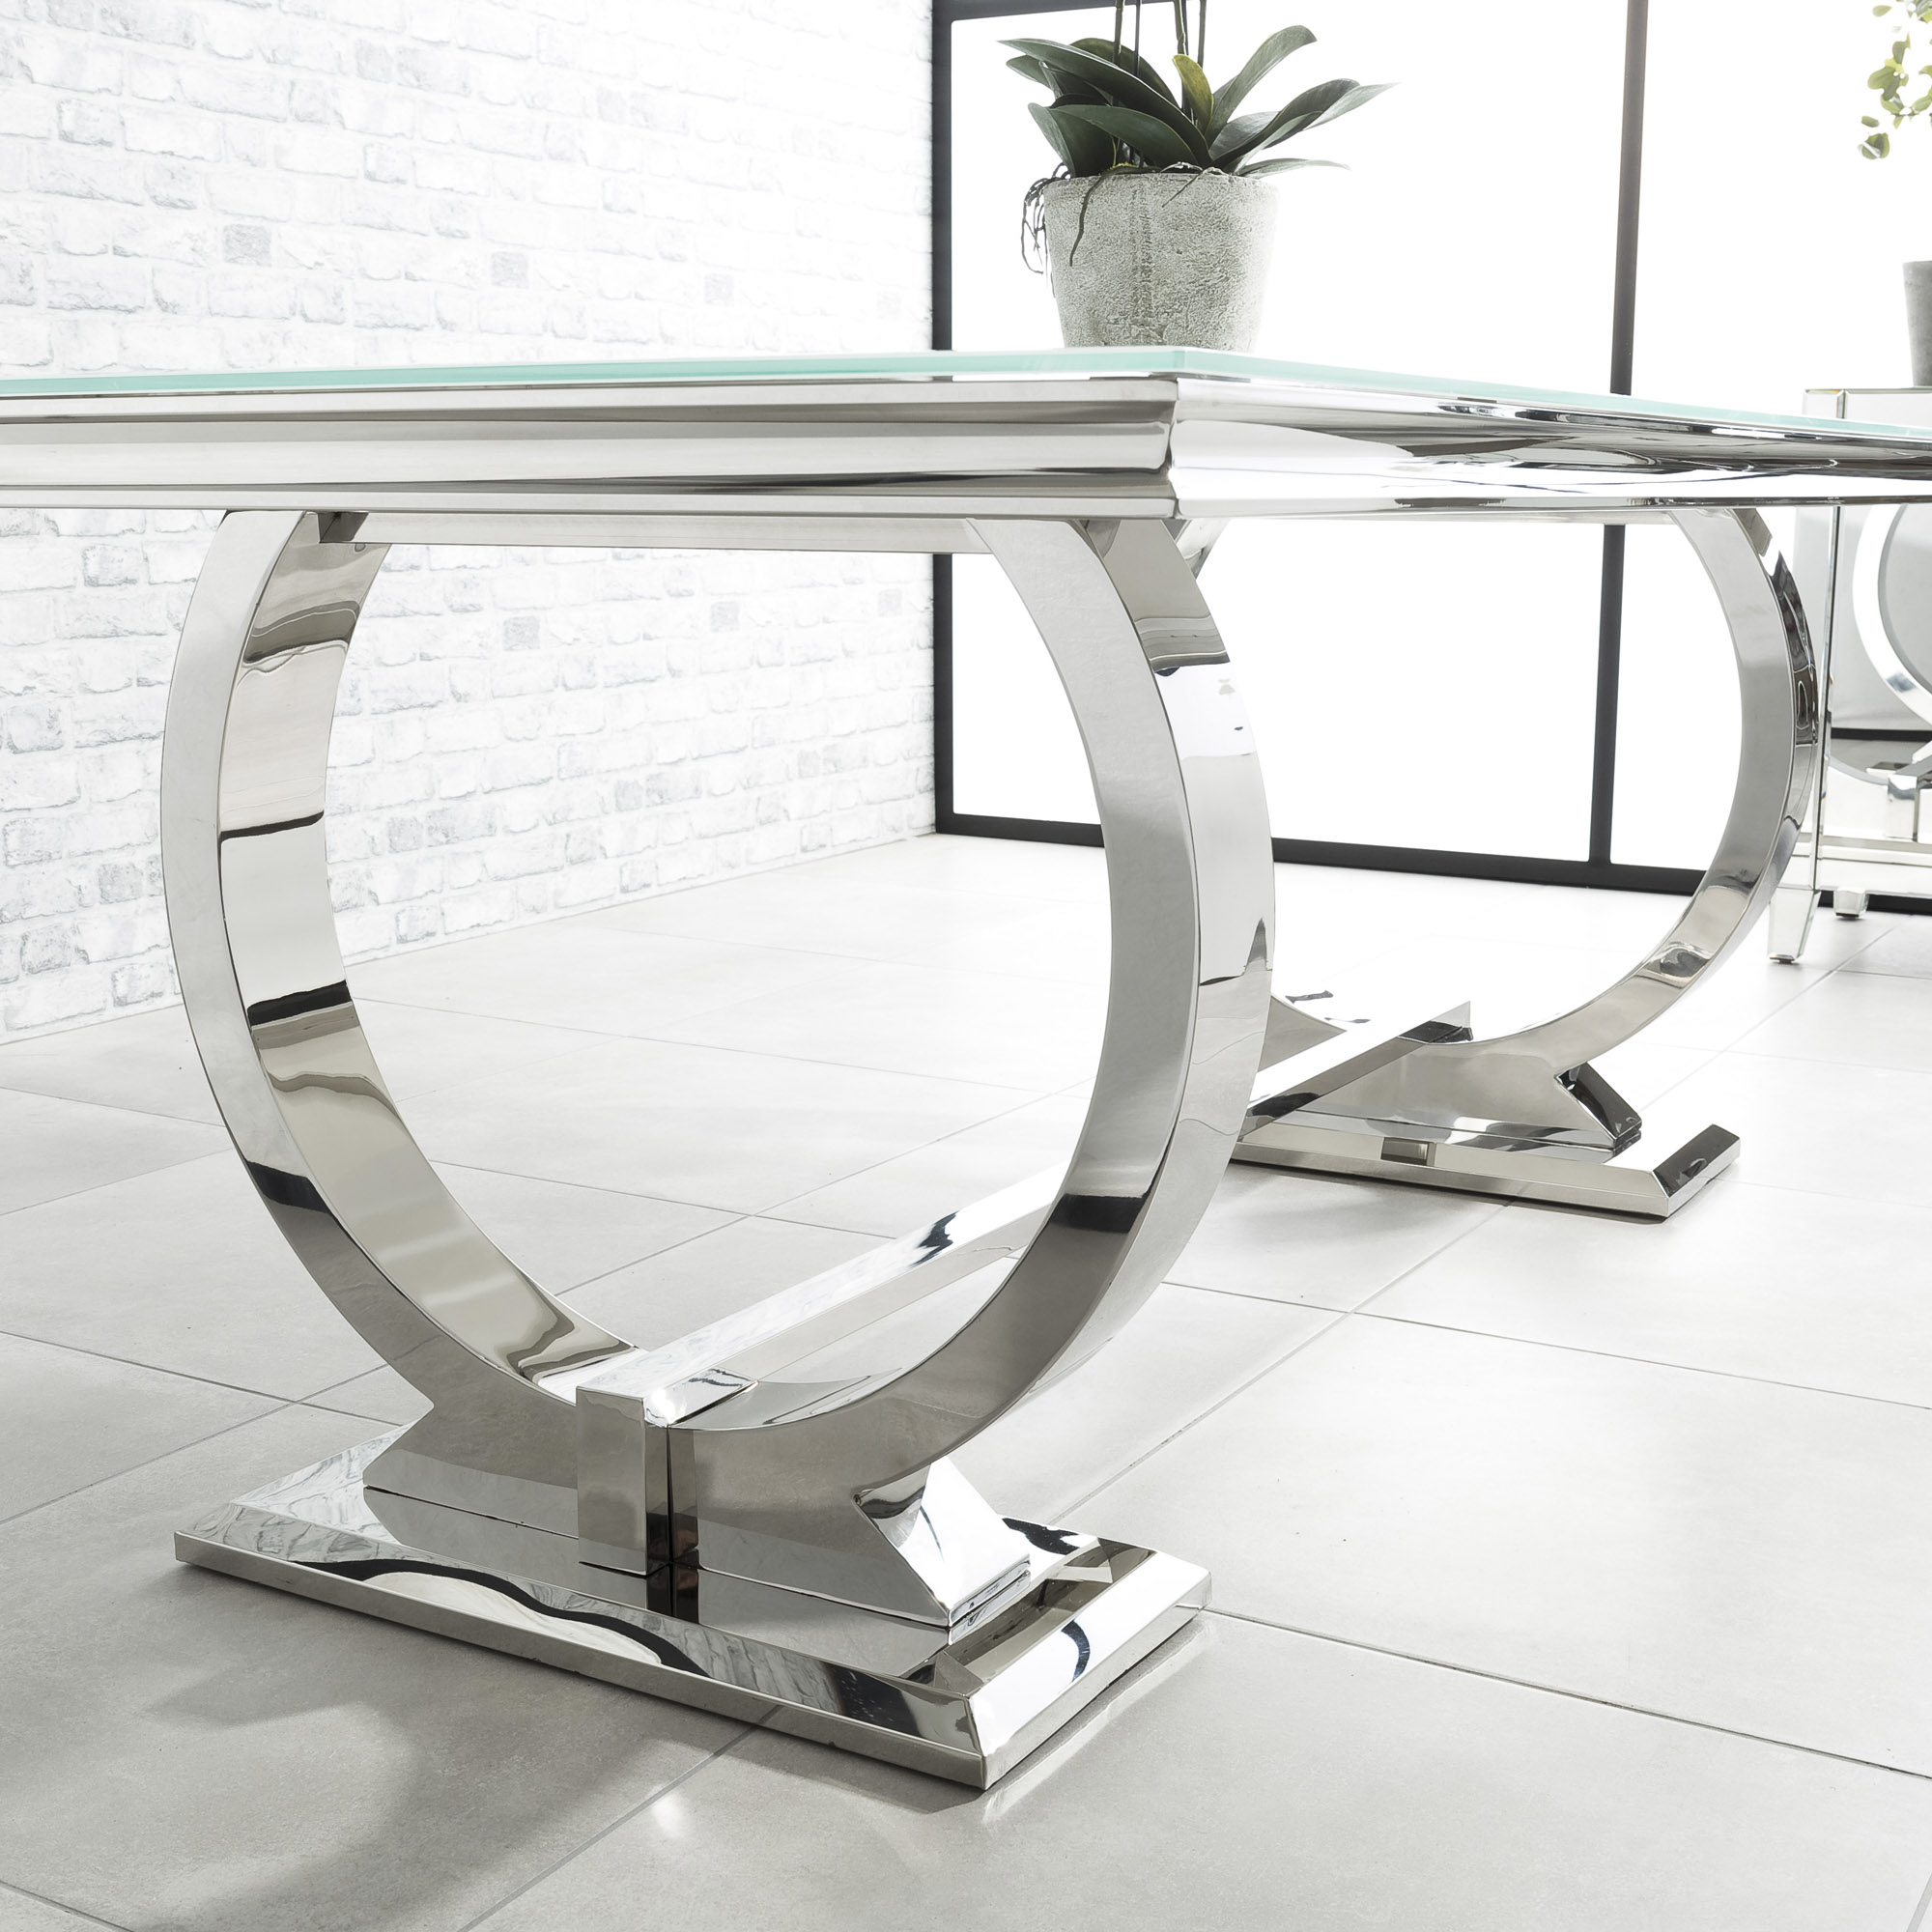 1.8m Polished Steel Dining Table